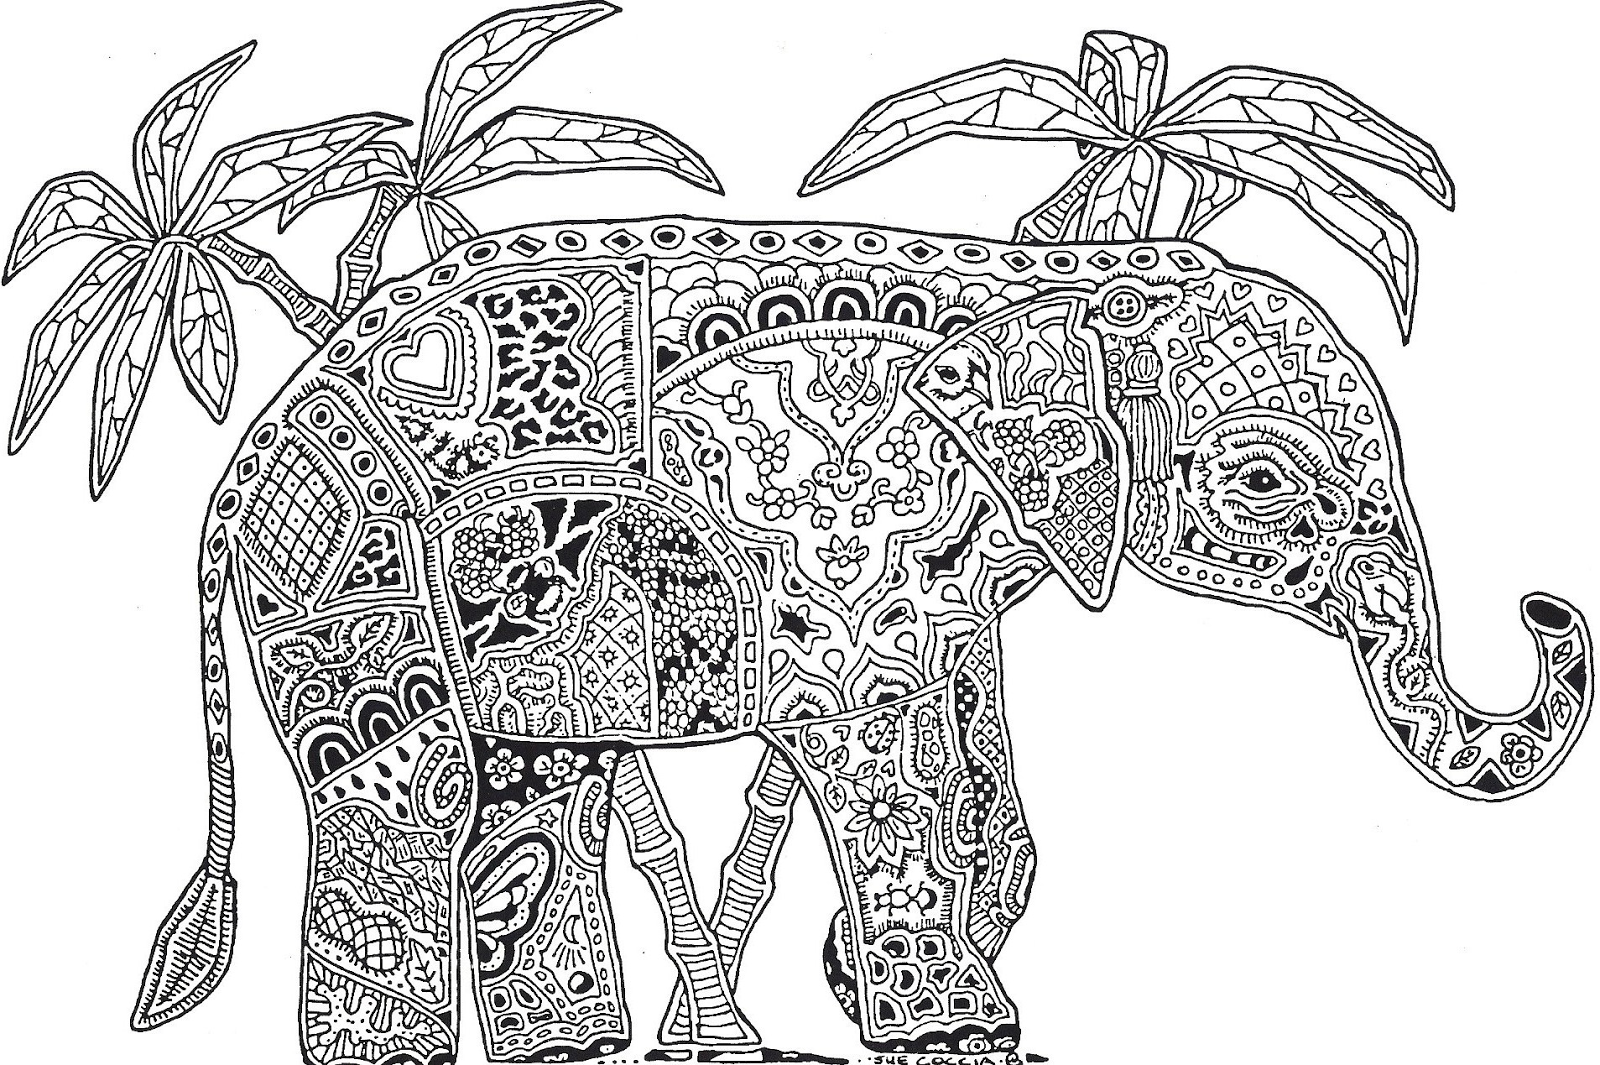 Abstrakcyjne Kolorowanki Dla Doroslych Elephant Coloring Page Detailed Coloring Pages Animal Coloring Pages